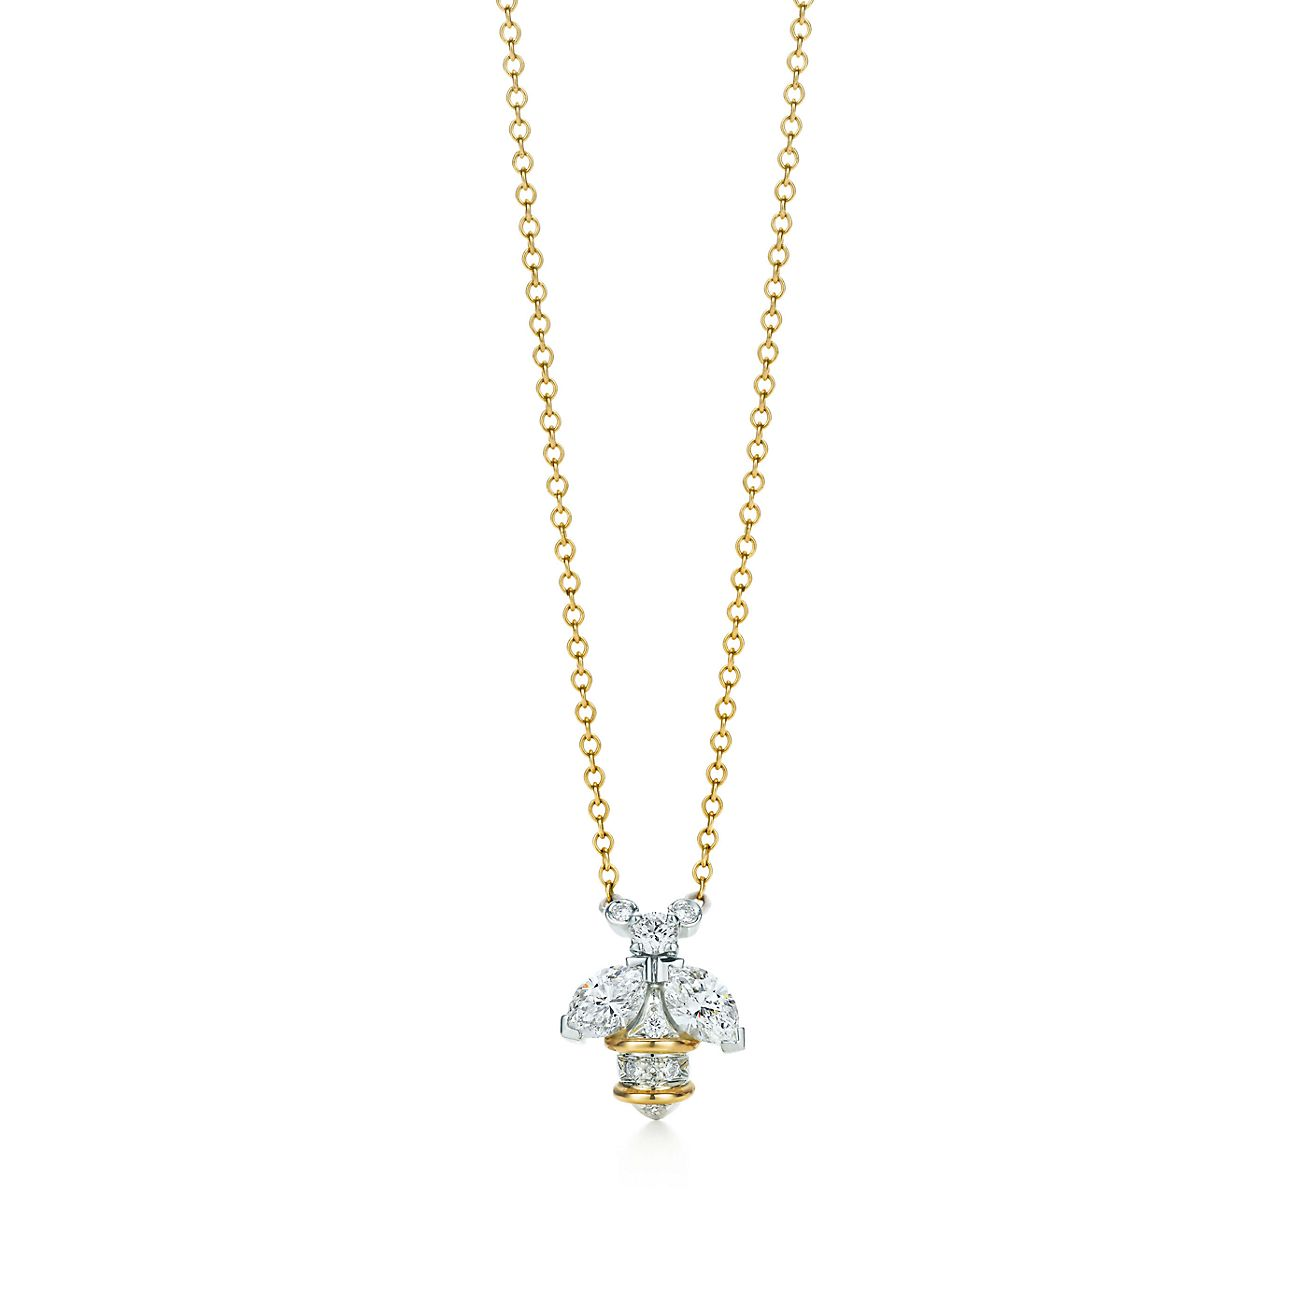 Tiffany co schlumberger bee pendant in 18k gold and platinum schlumbergerbee pendant aloadofball